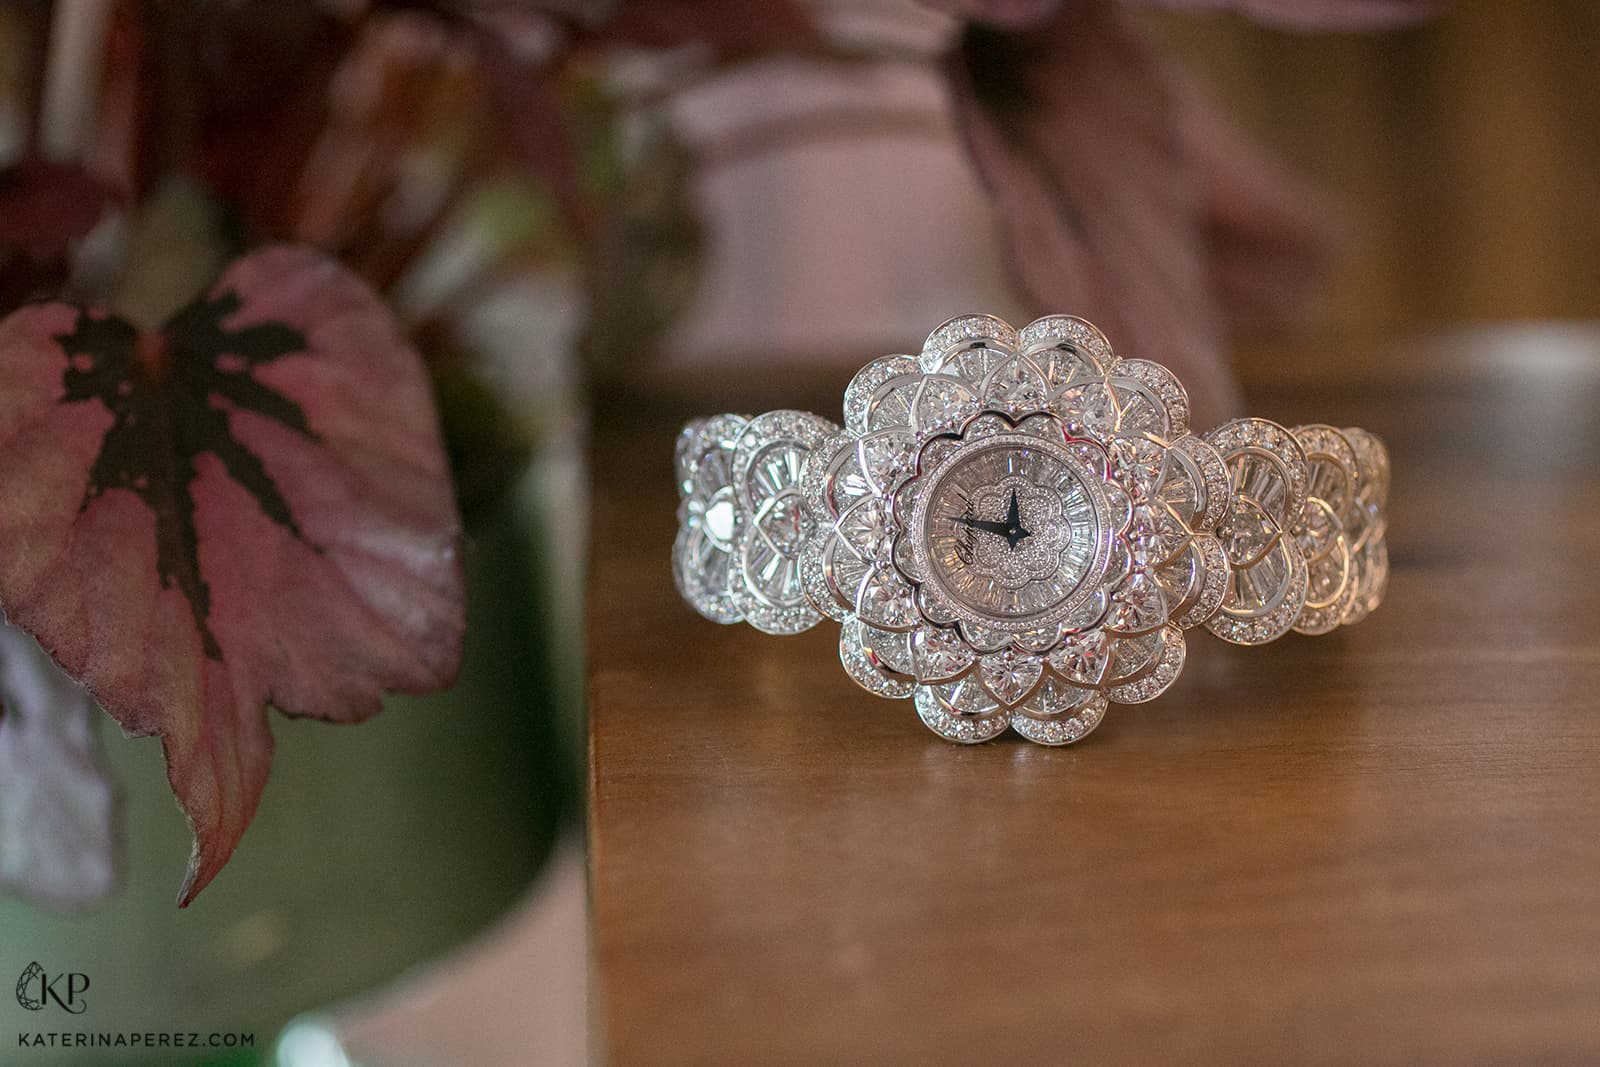 Chopard 'Waterlily' watch with 43ct diamonds in white gold